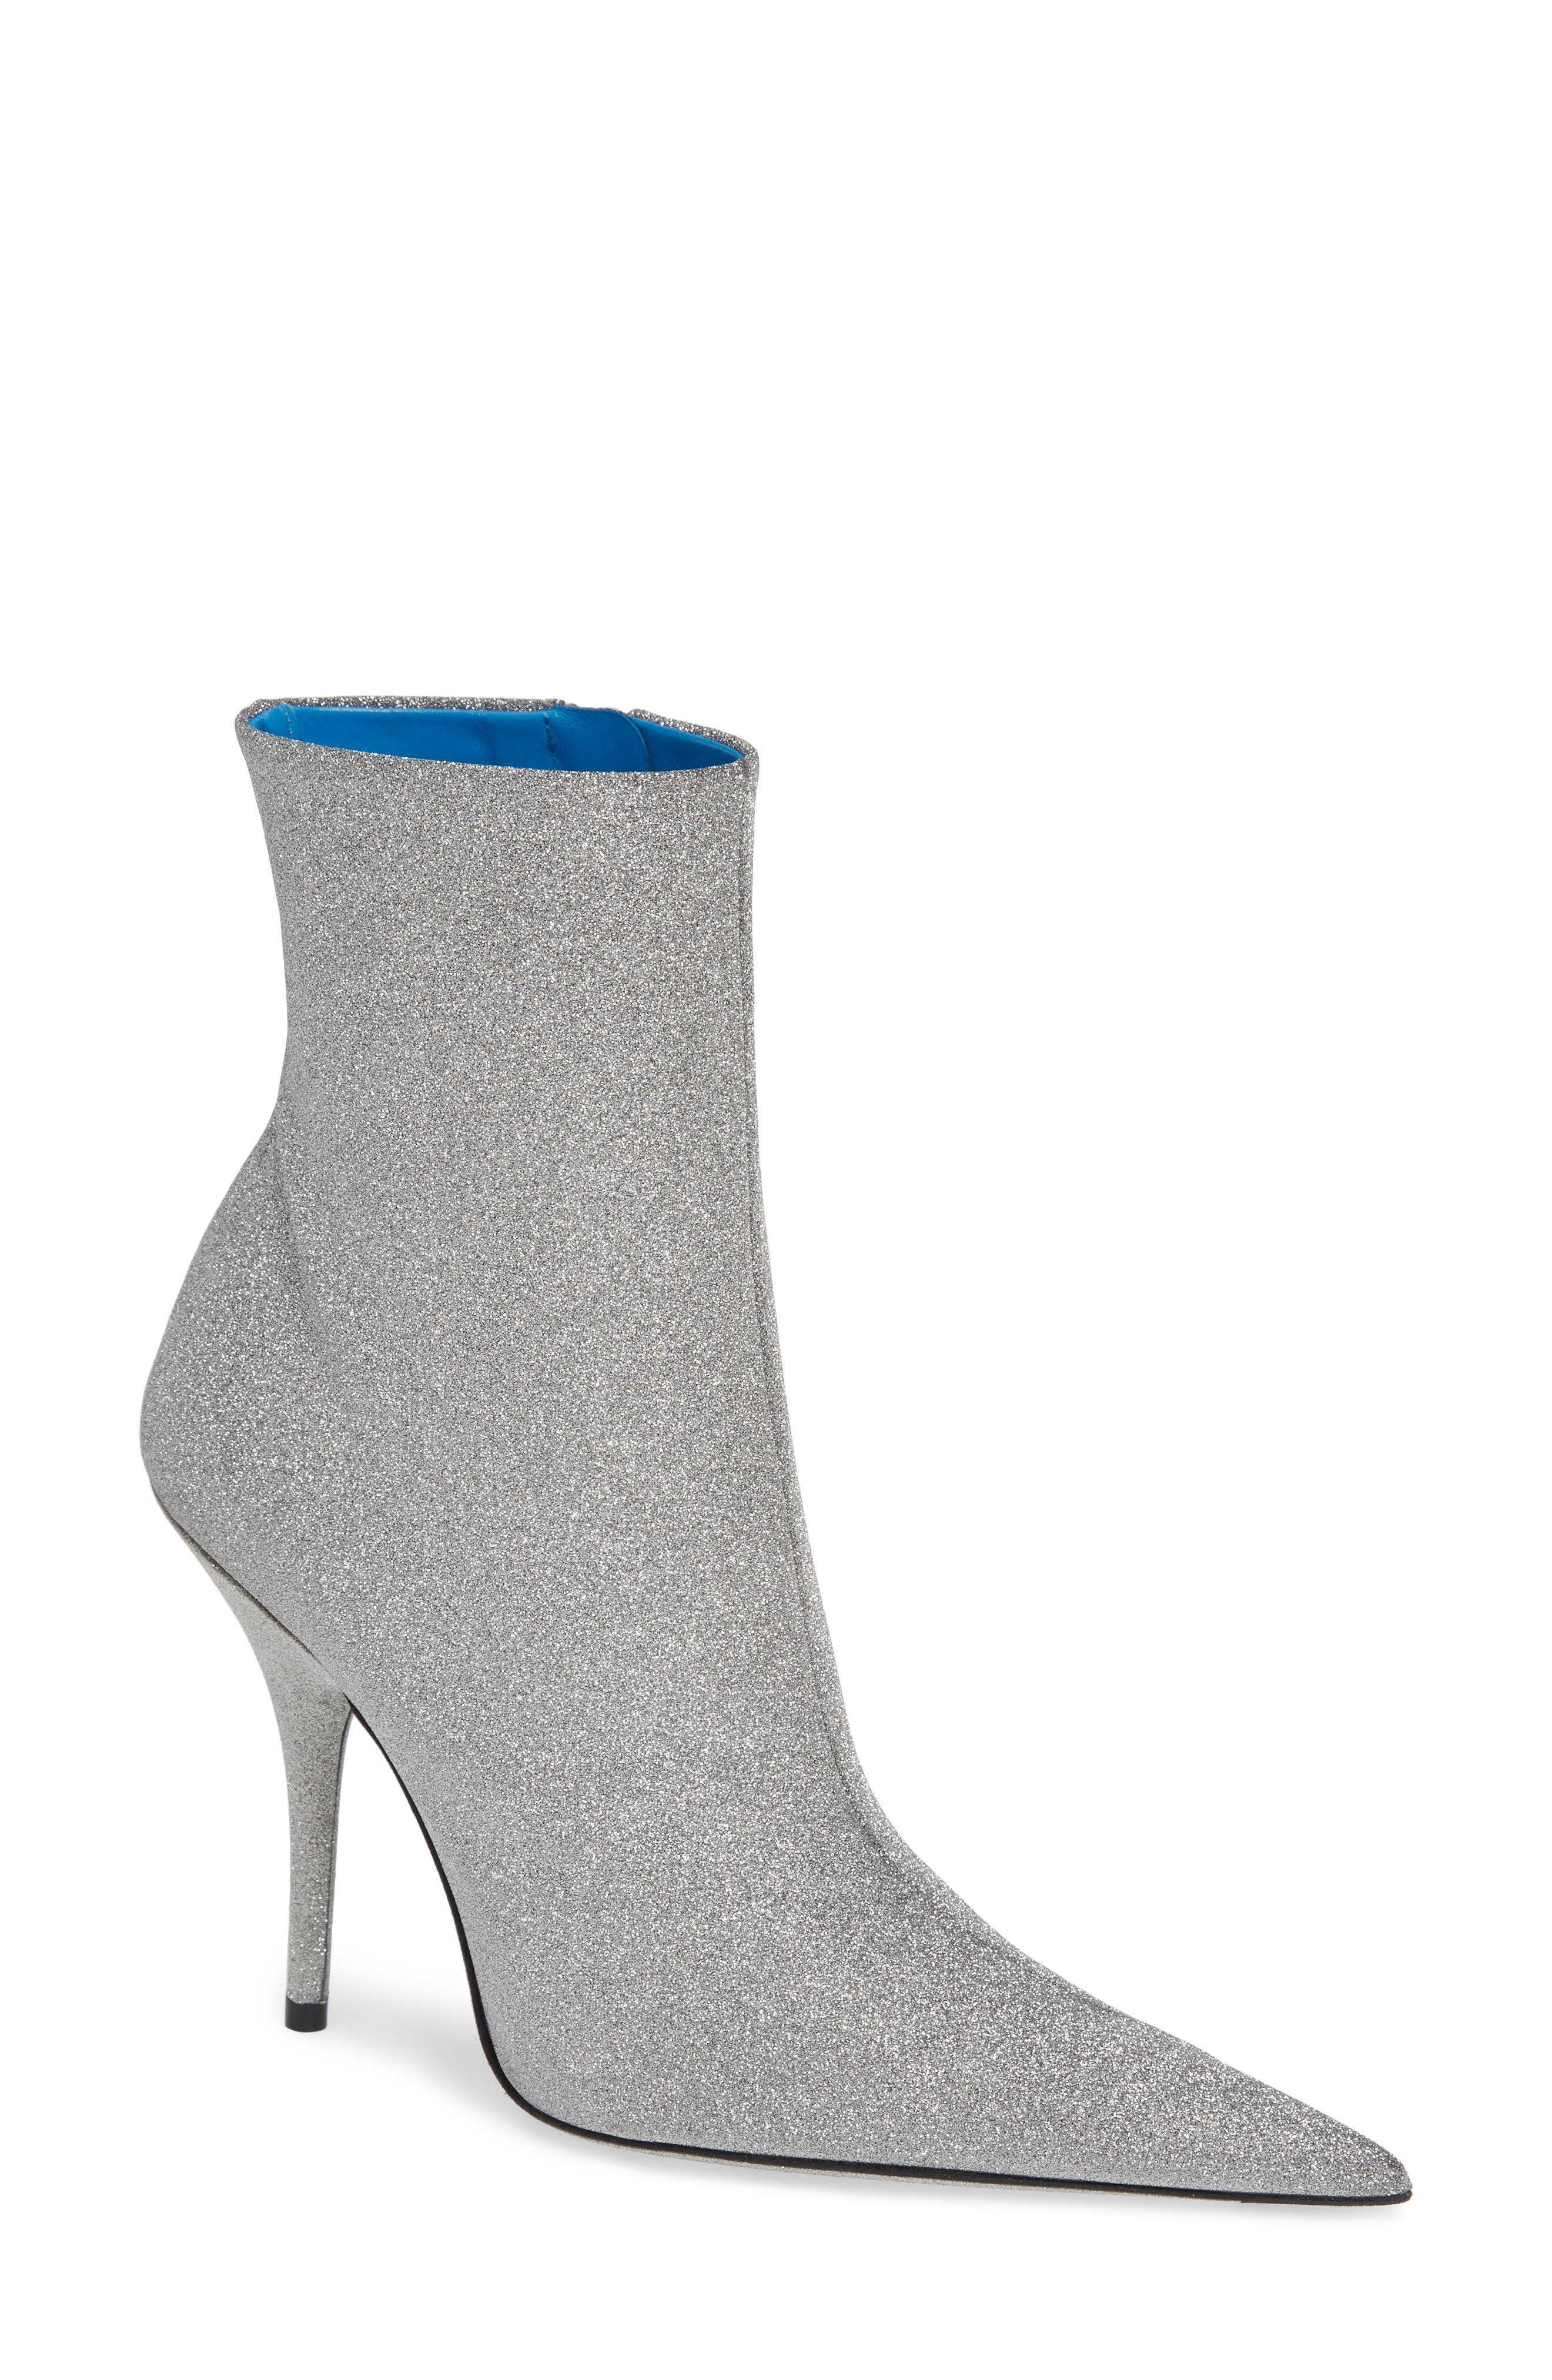 Knife Glitter Ankle Boots - Gray Size 7